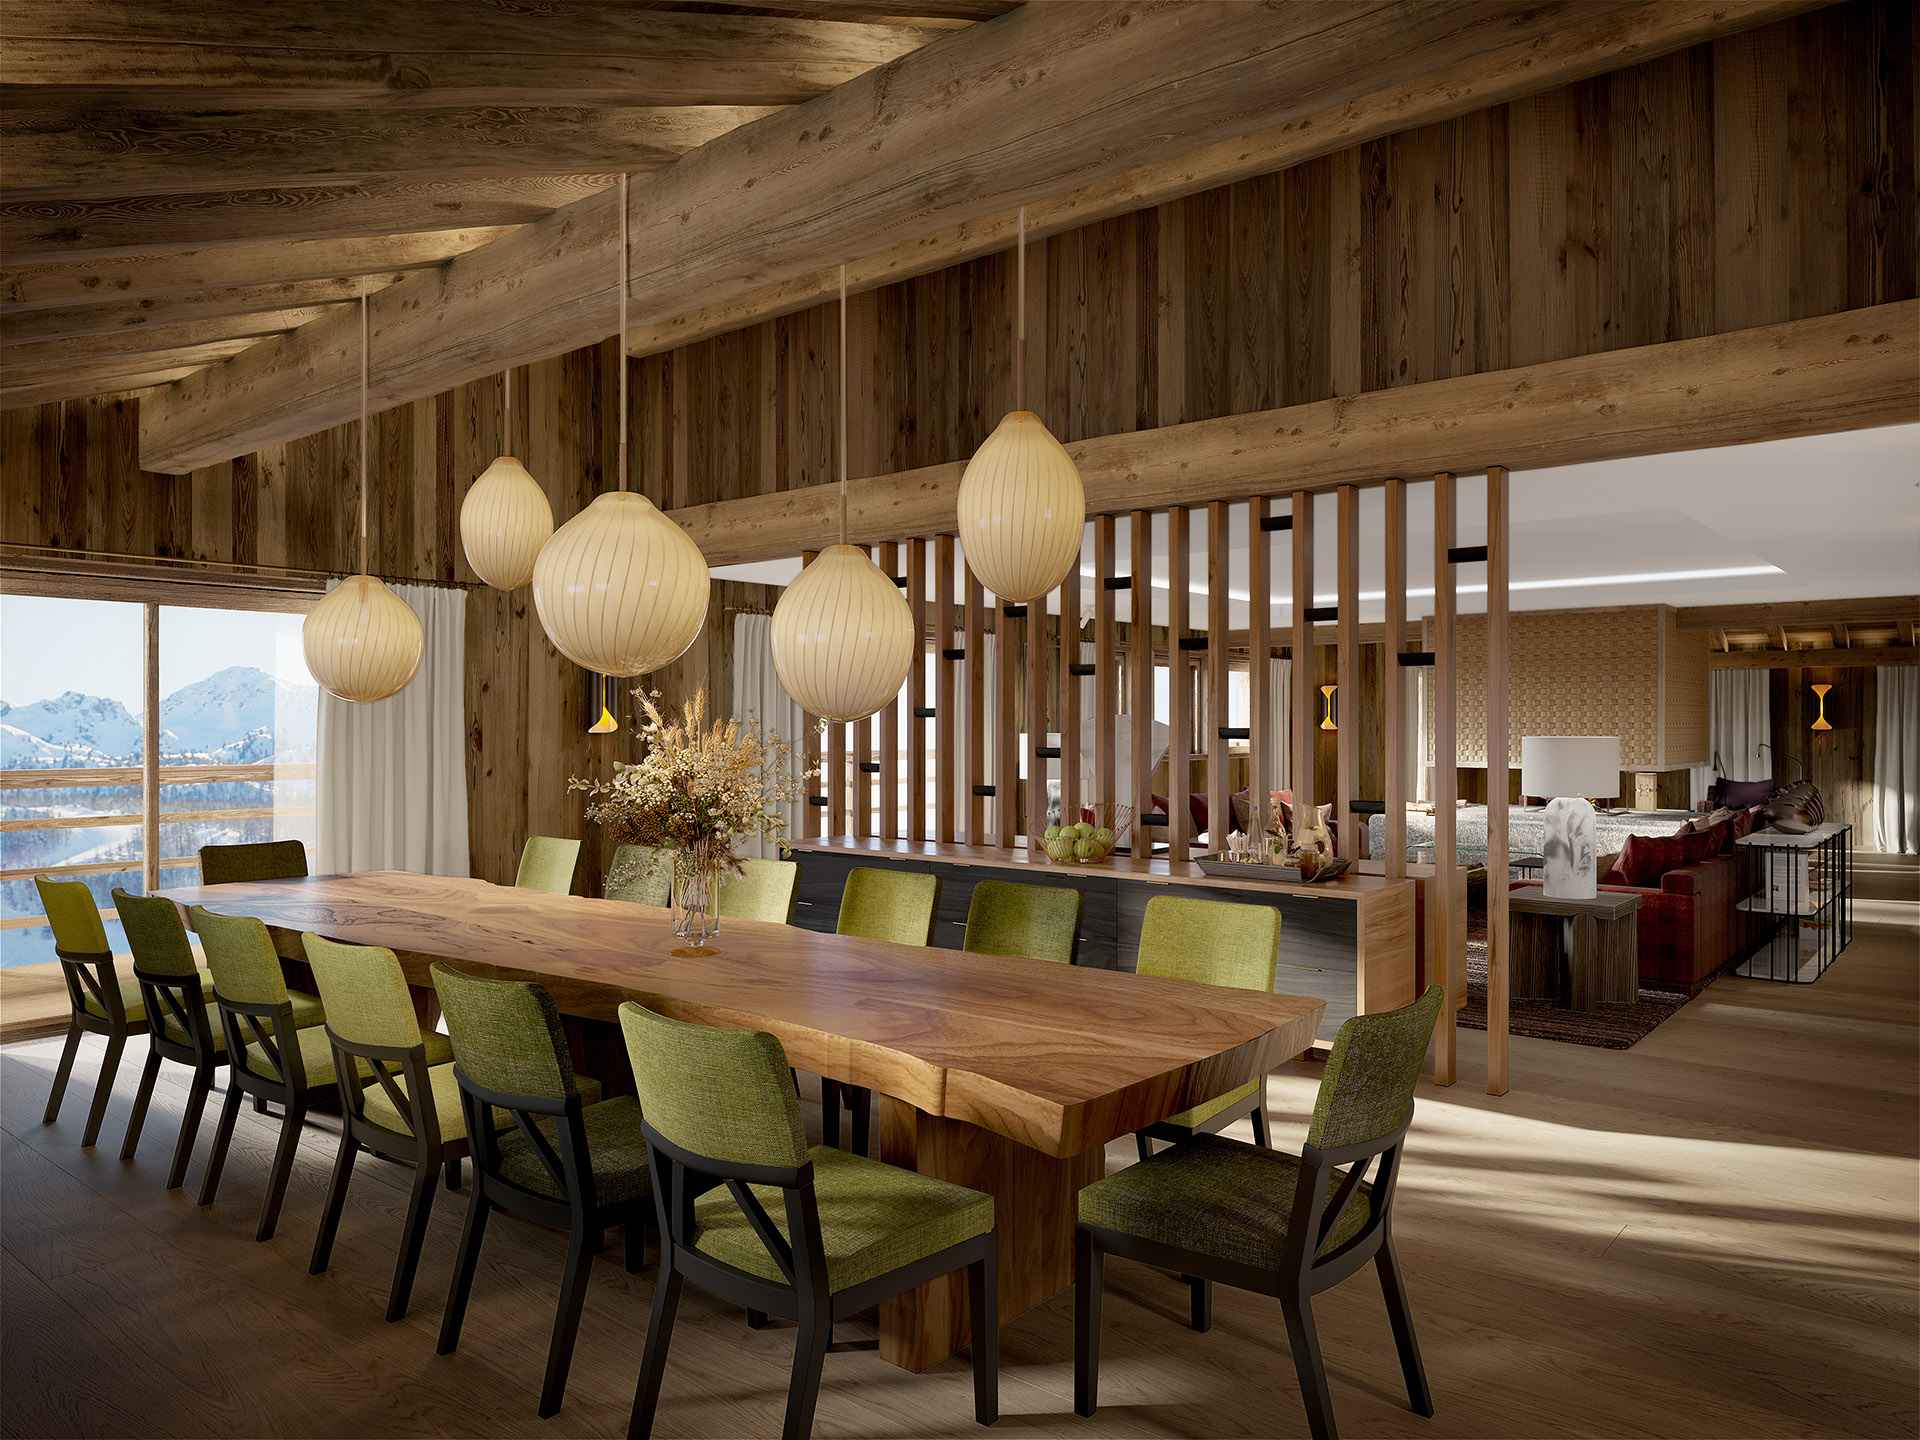 3D rendering of a modern dining room in a chalet